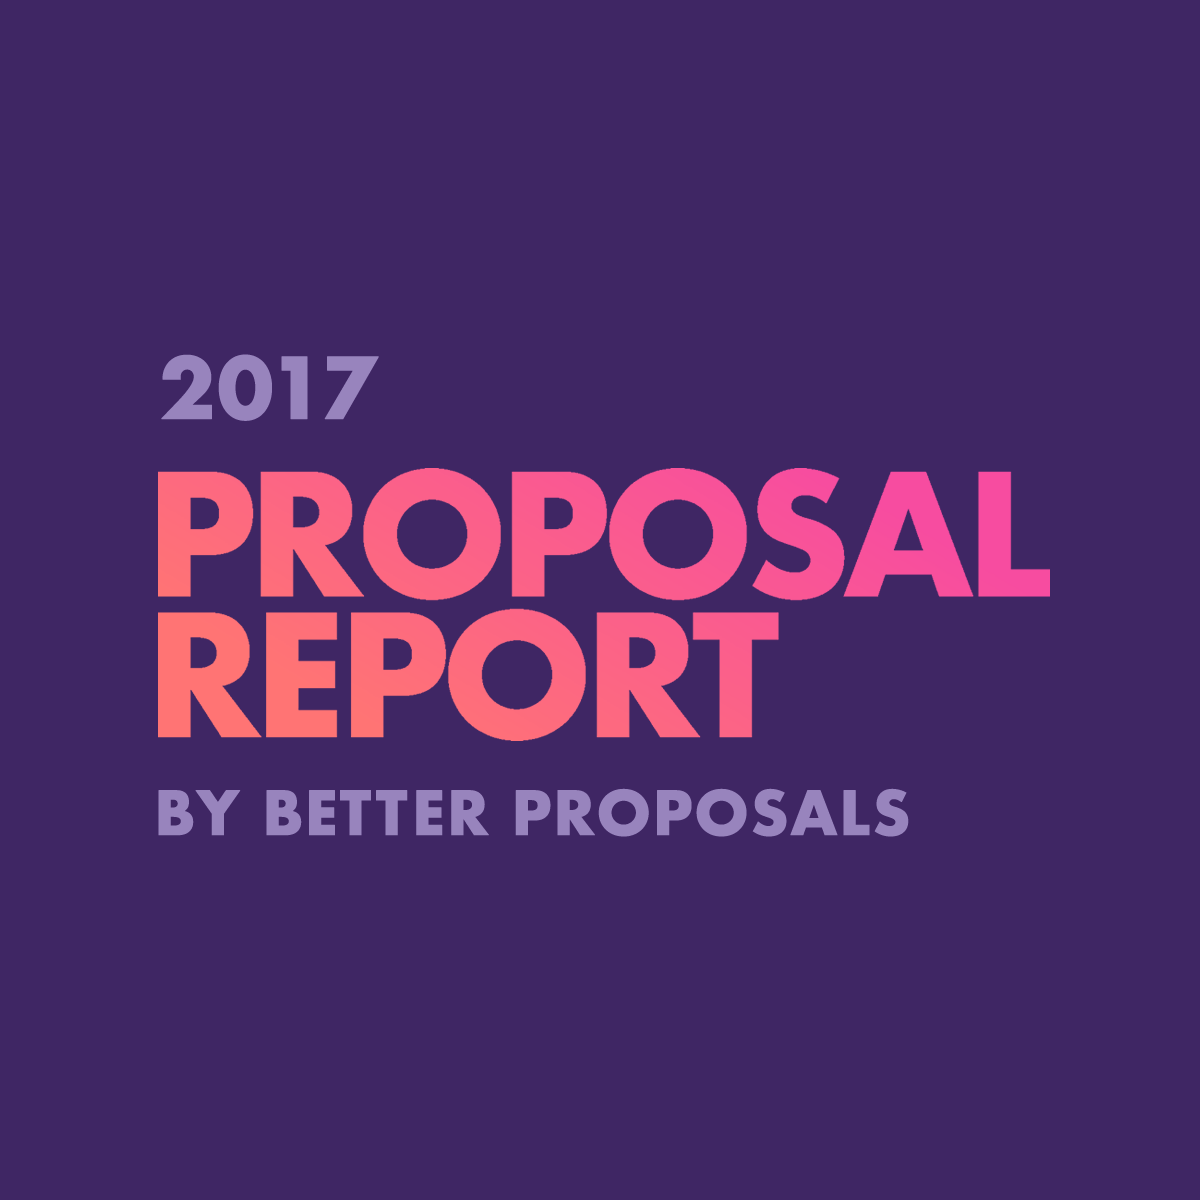 2017 Proposal Report – Better Proposals